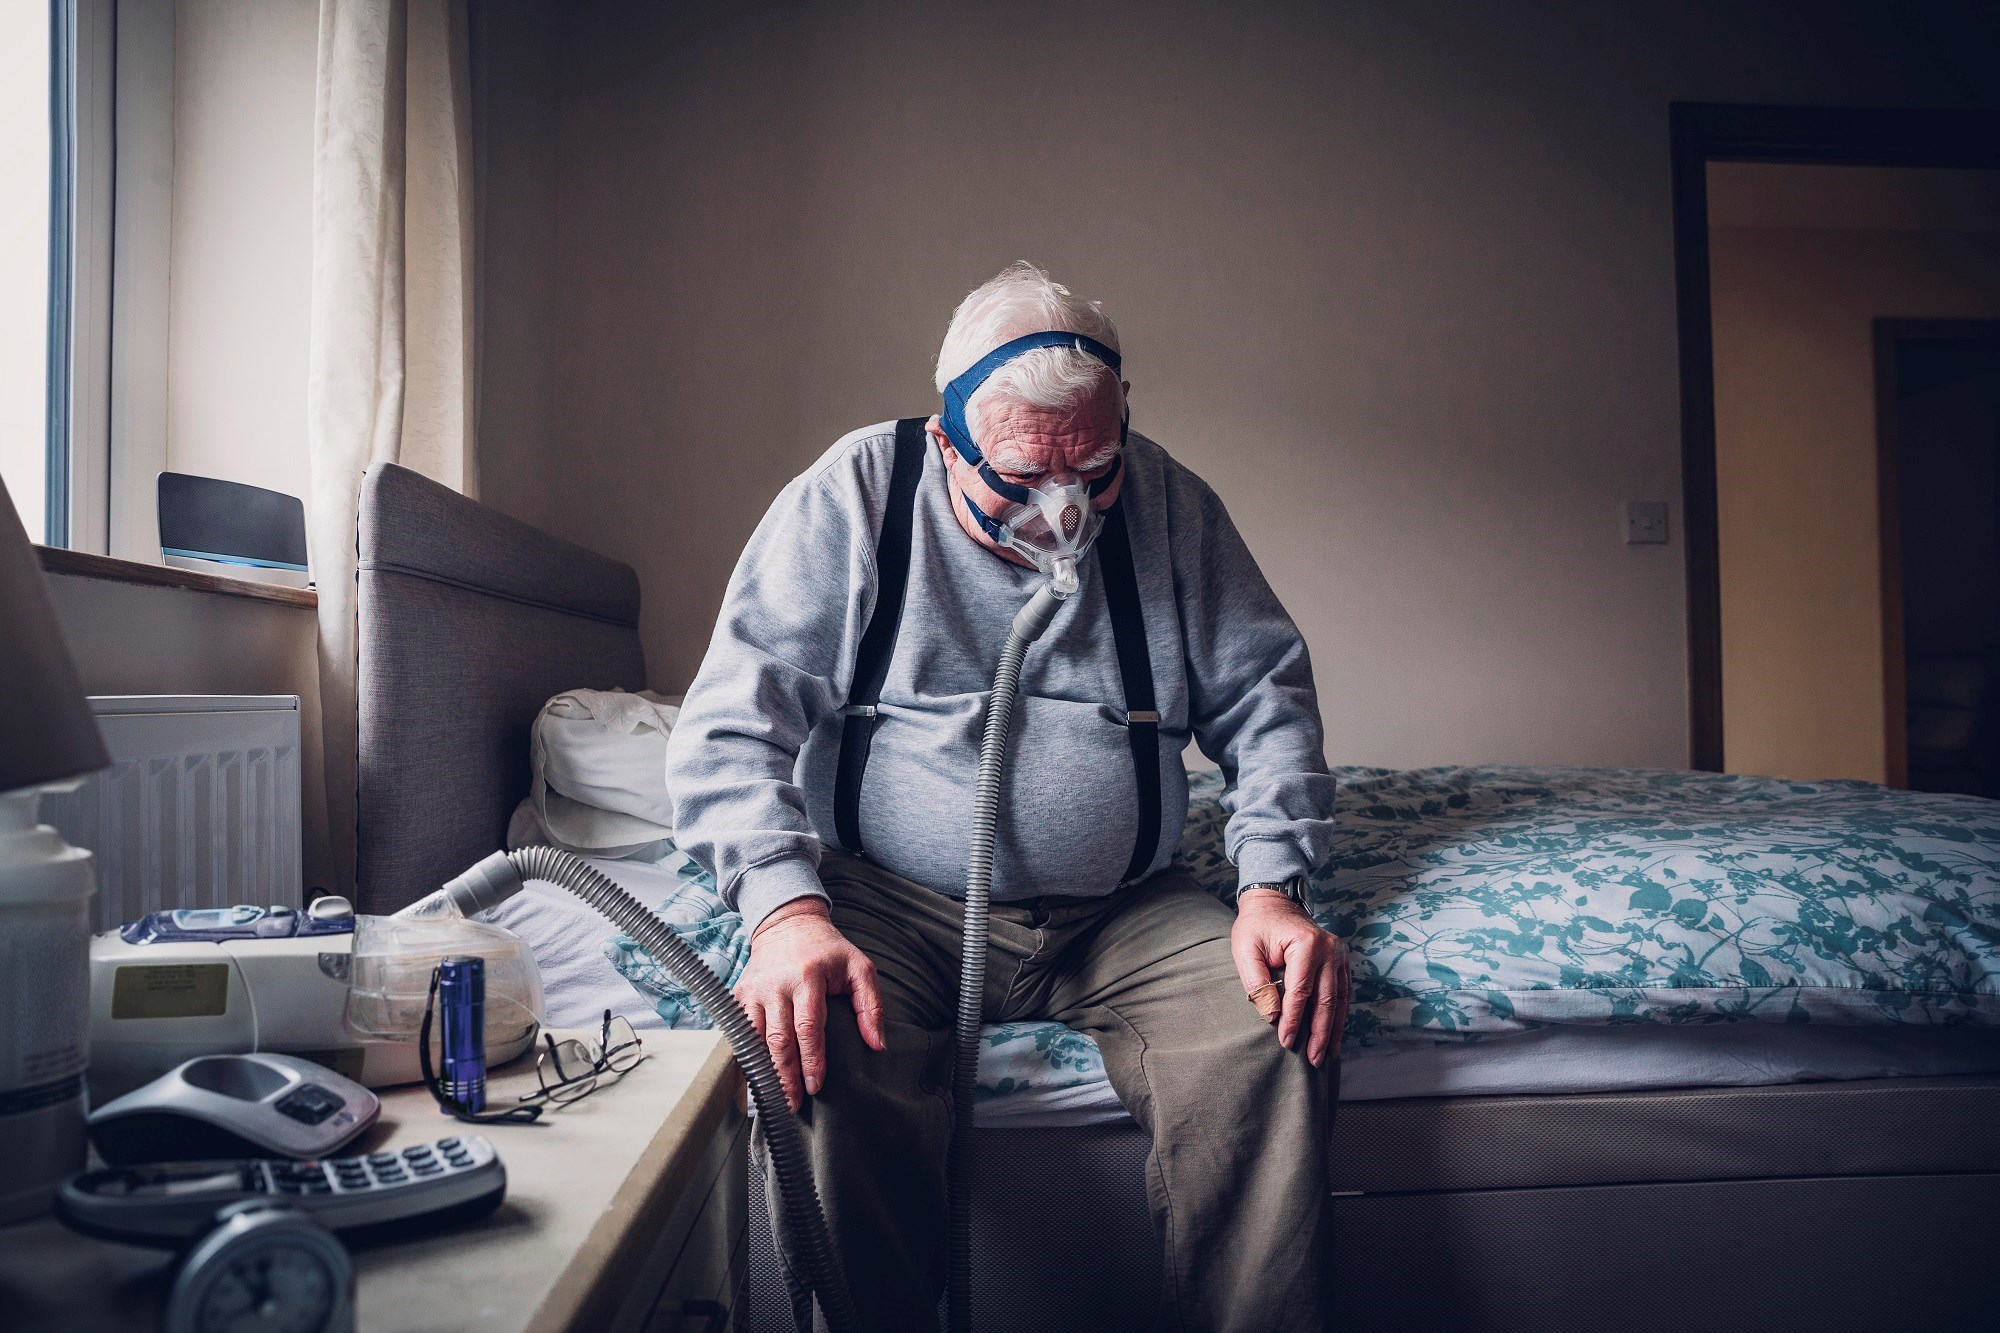 Researchers evaluated sleepiness, fatigue, anxiety, and depression among patients with overlap syndrome, obstructive sleep apnea, and a control group.